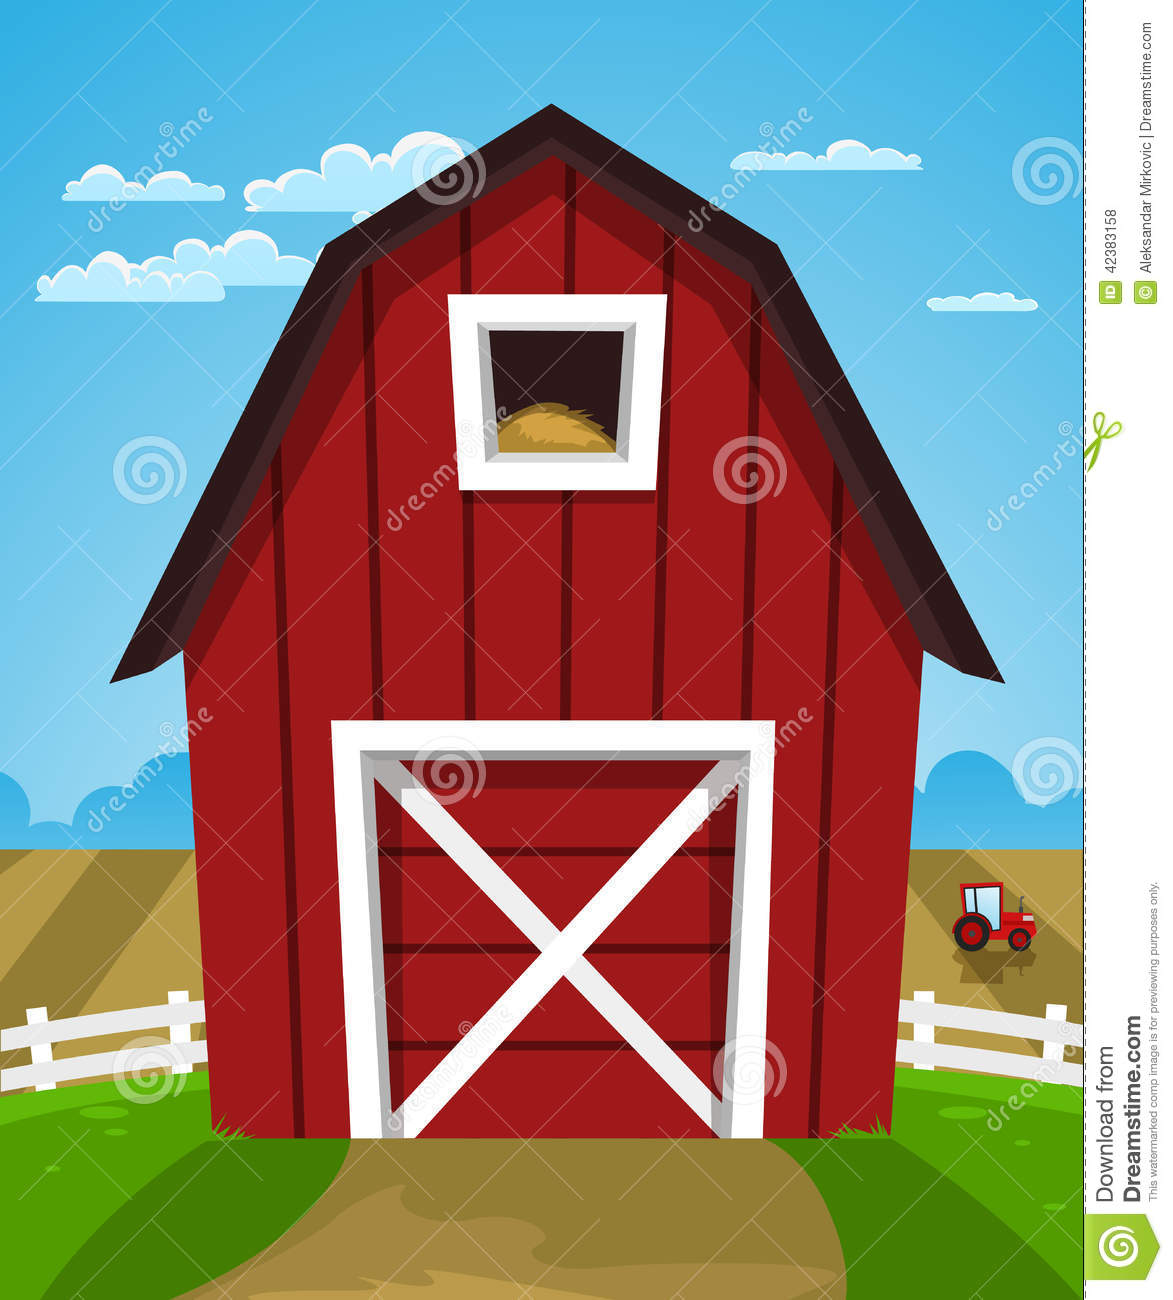 Cartoon Illustration Of Red Farm Barn With Tractor